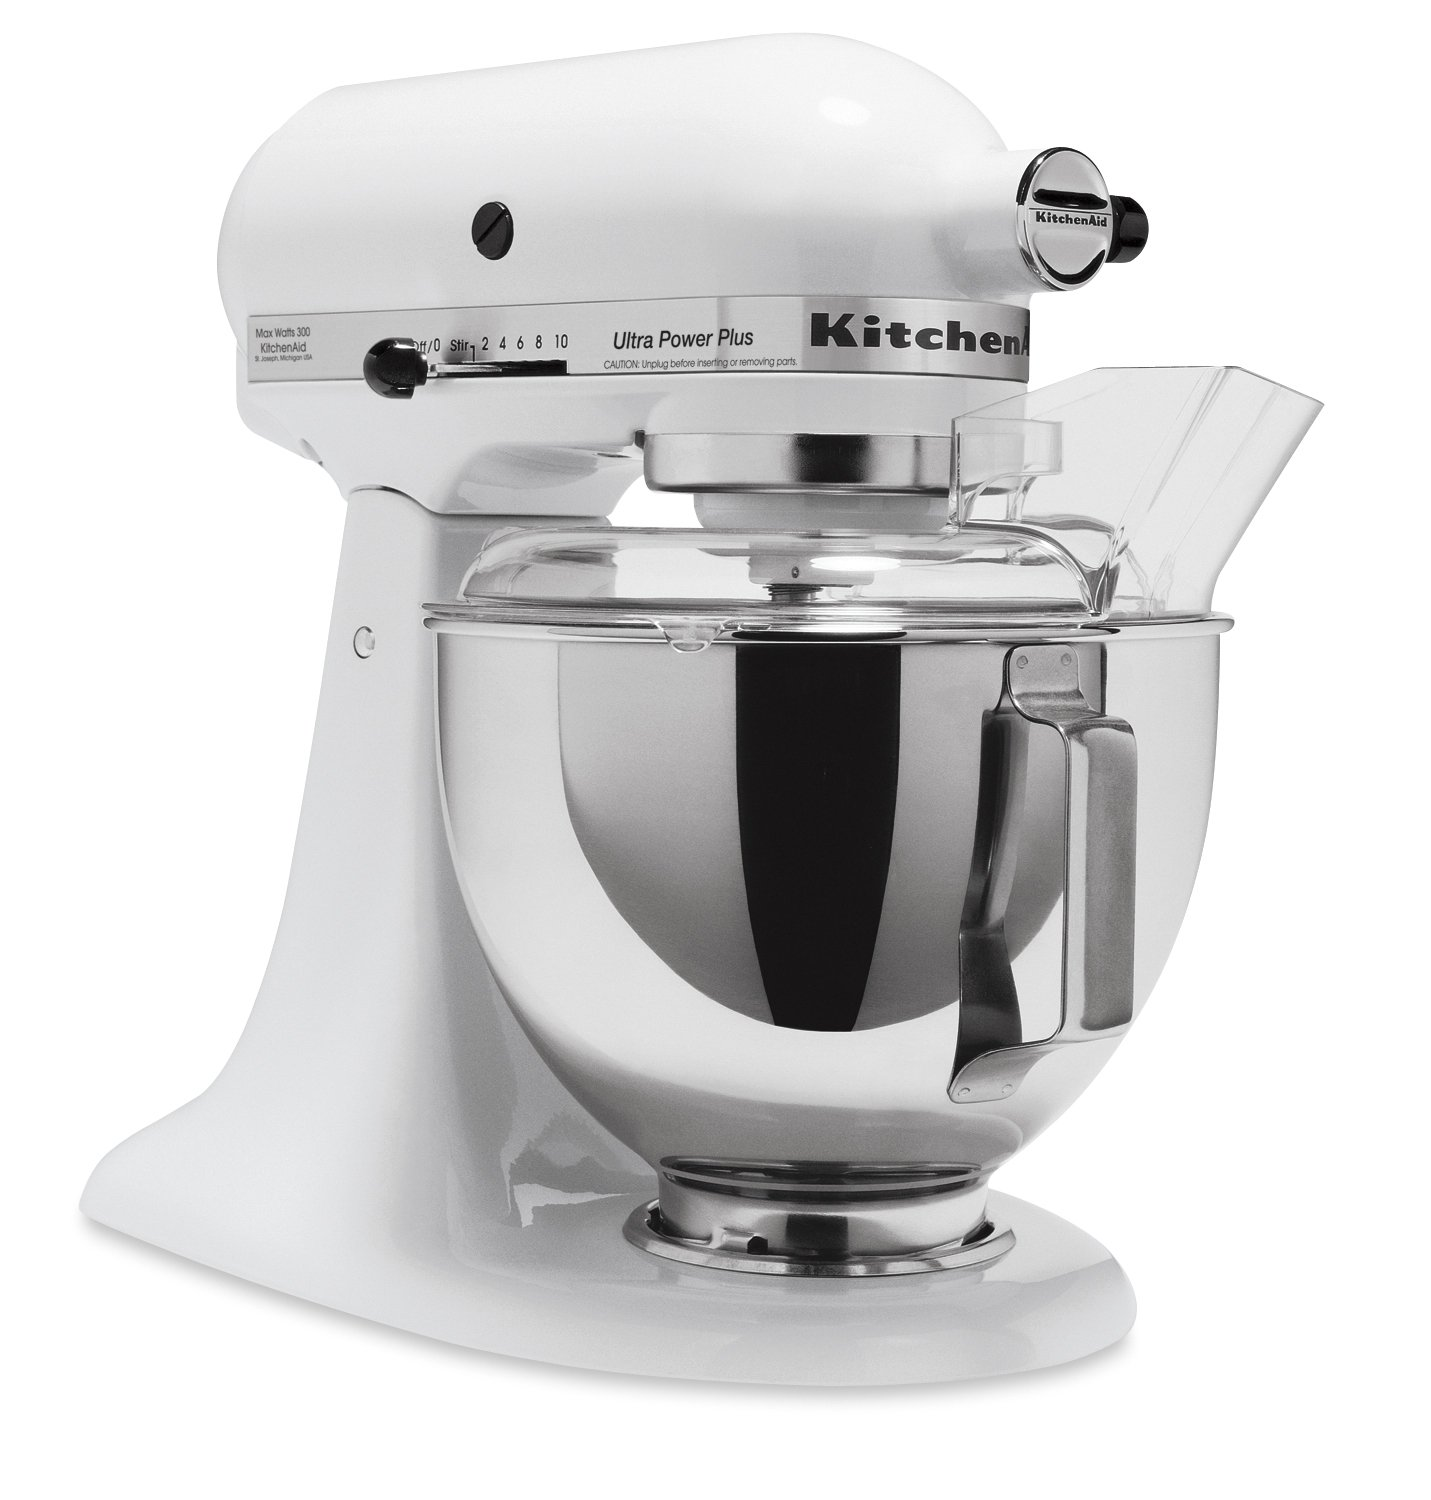 kitchenaid ksm100pswh ultra power plus stand mixer white